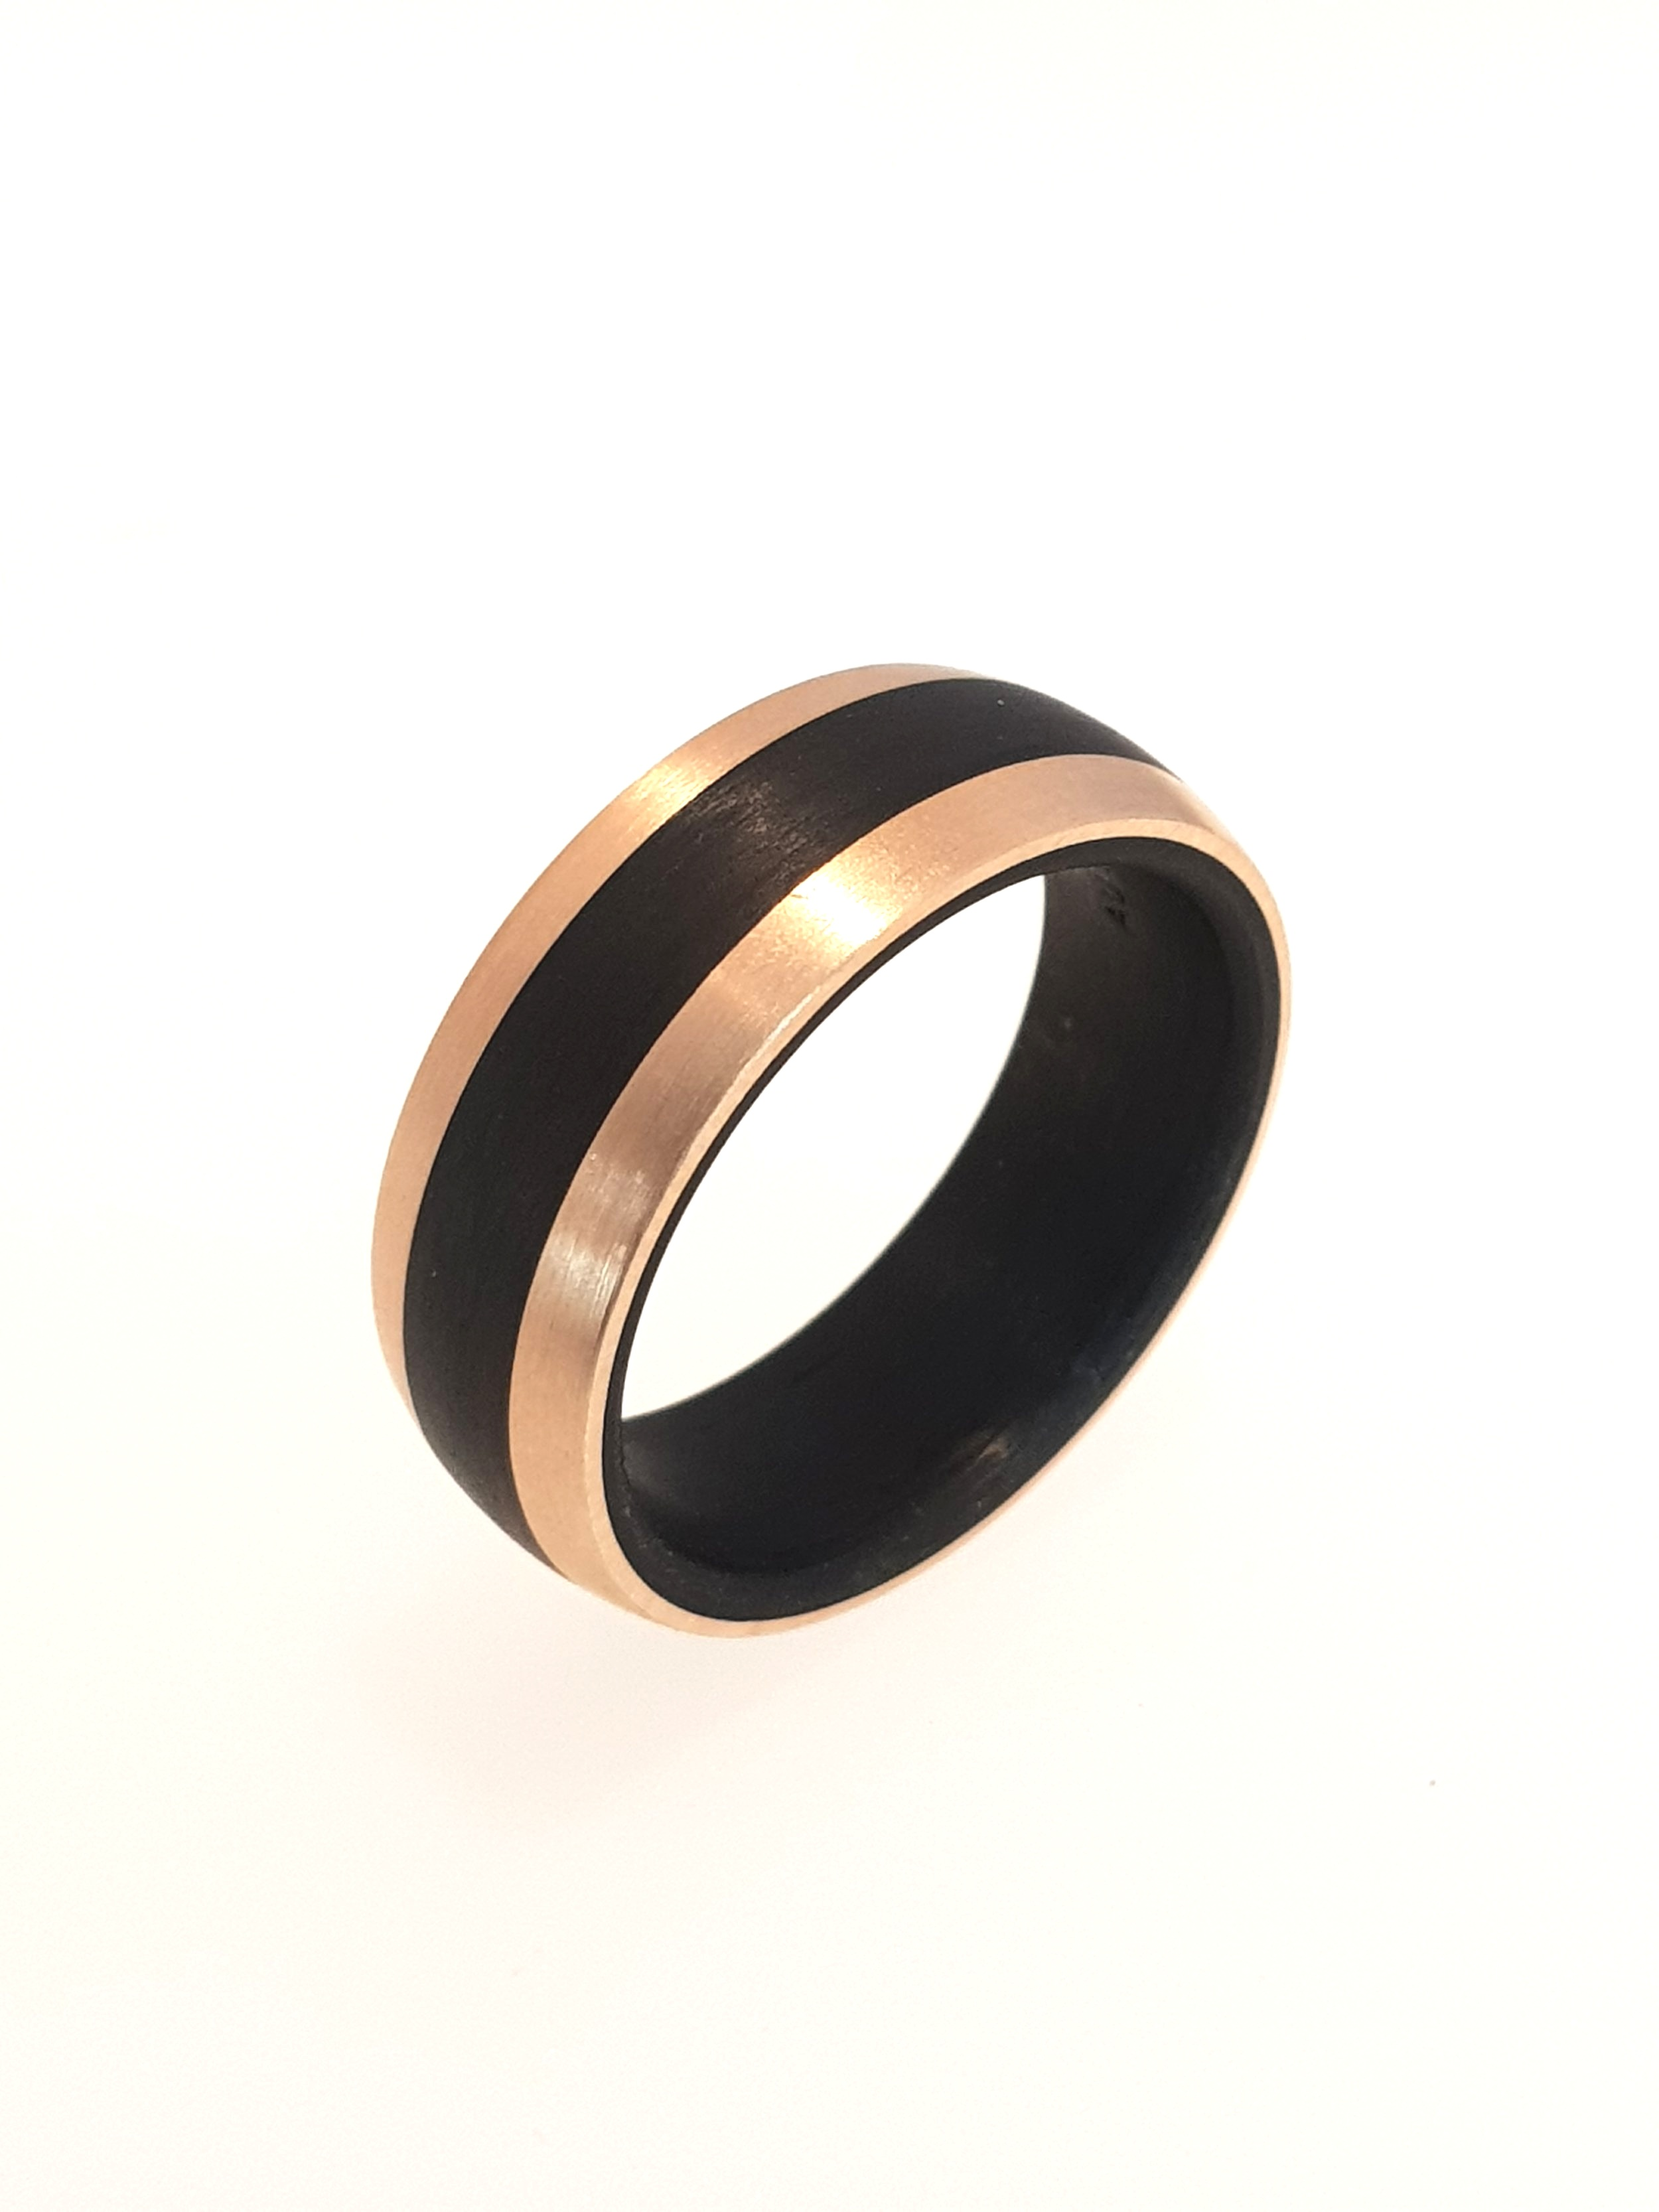 Carbon Fibre Ring, 8mm Band    Titan Factory (Model: 59319/003/000/N556)   Current Stock Size: U  Stock Code: E9828  £560